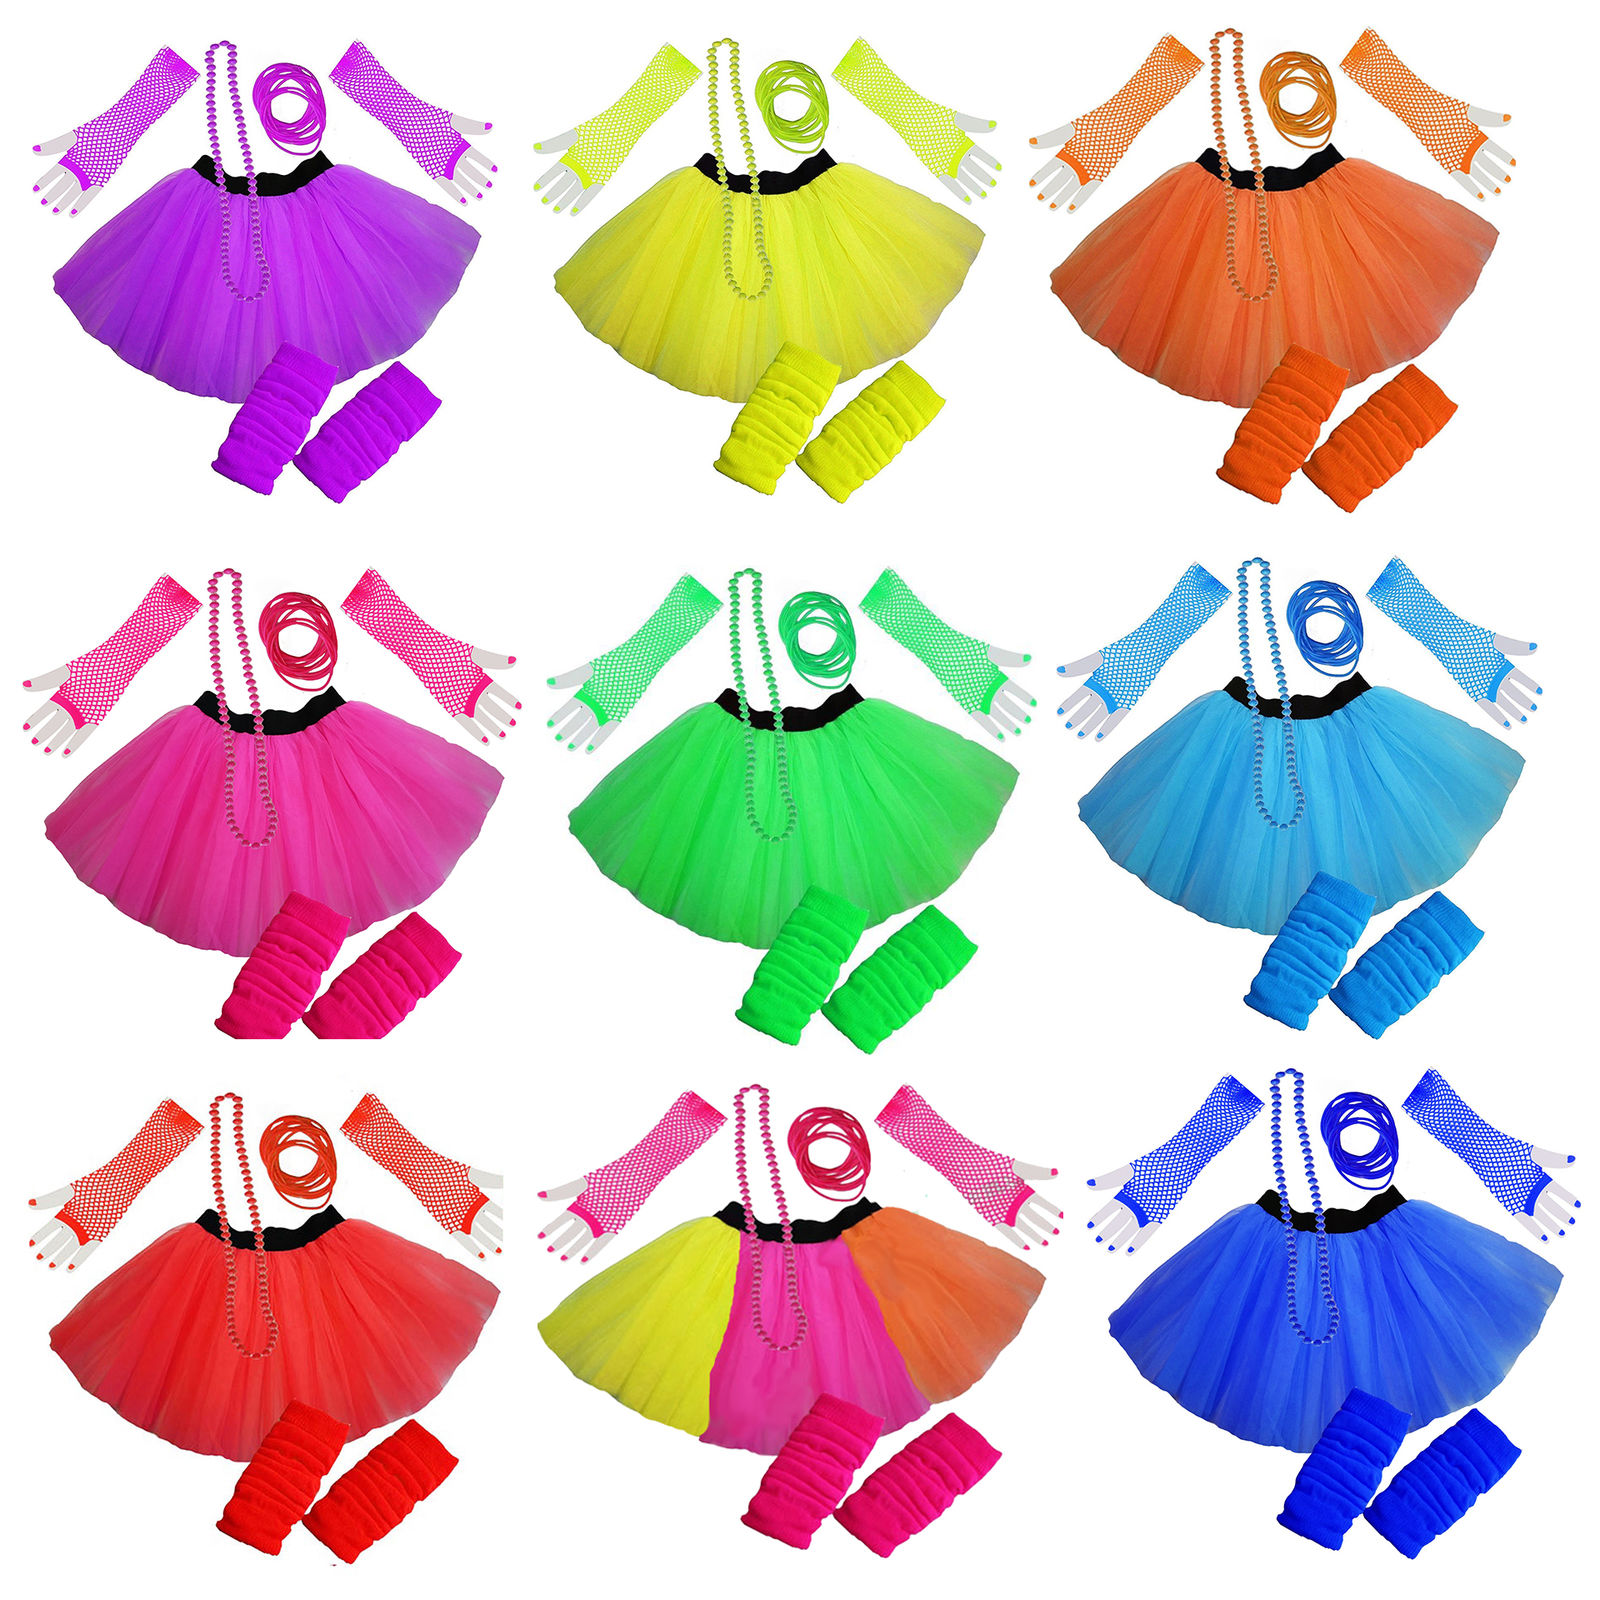 Tutu with Tail Great for Hen Party//Fancy dress//Dance//Festival//HALLOWEEN!